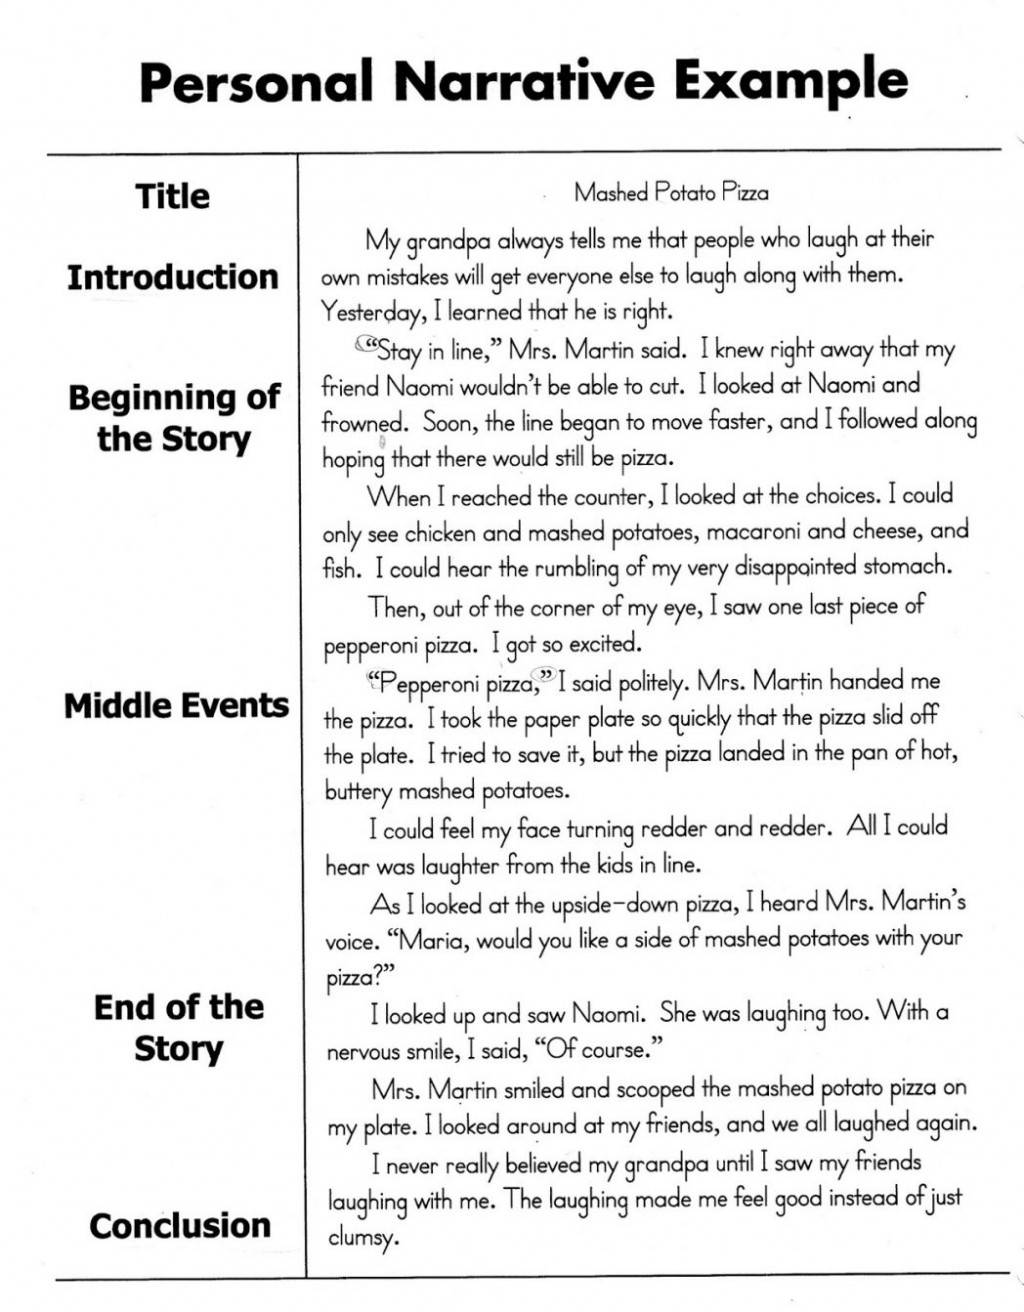 003 Narrative Essay Topics For College Students Example Macbeth Topic Sample High School Personal Prompts Unforgettable Ideas Large